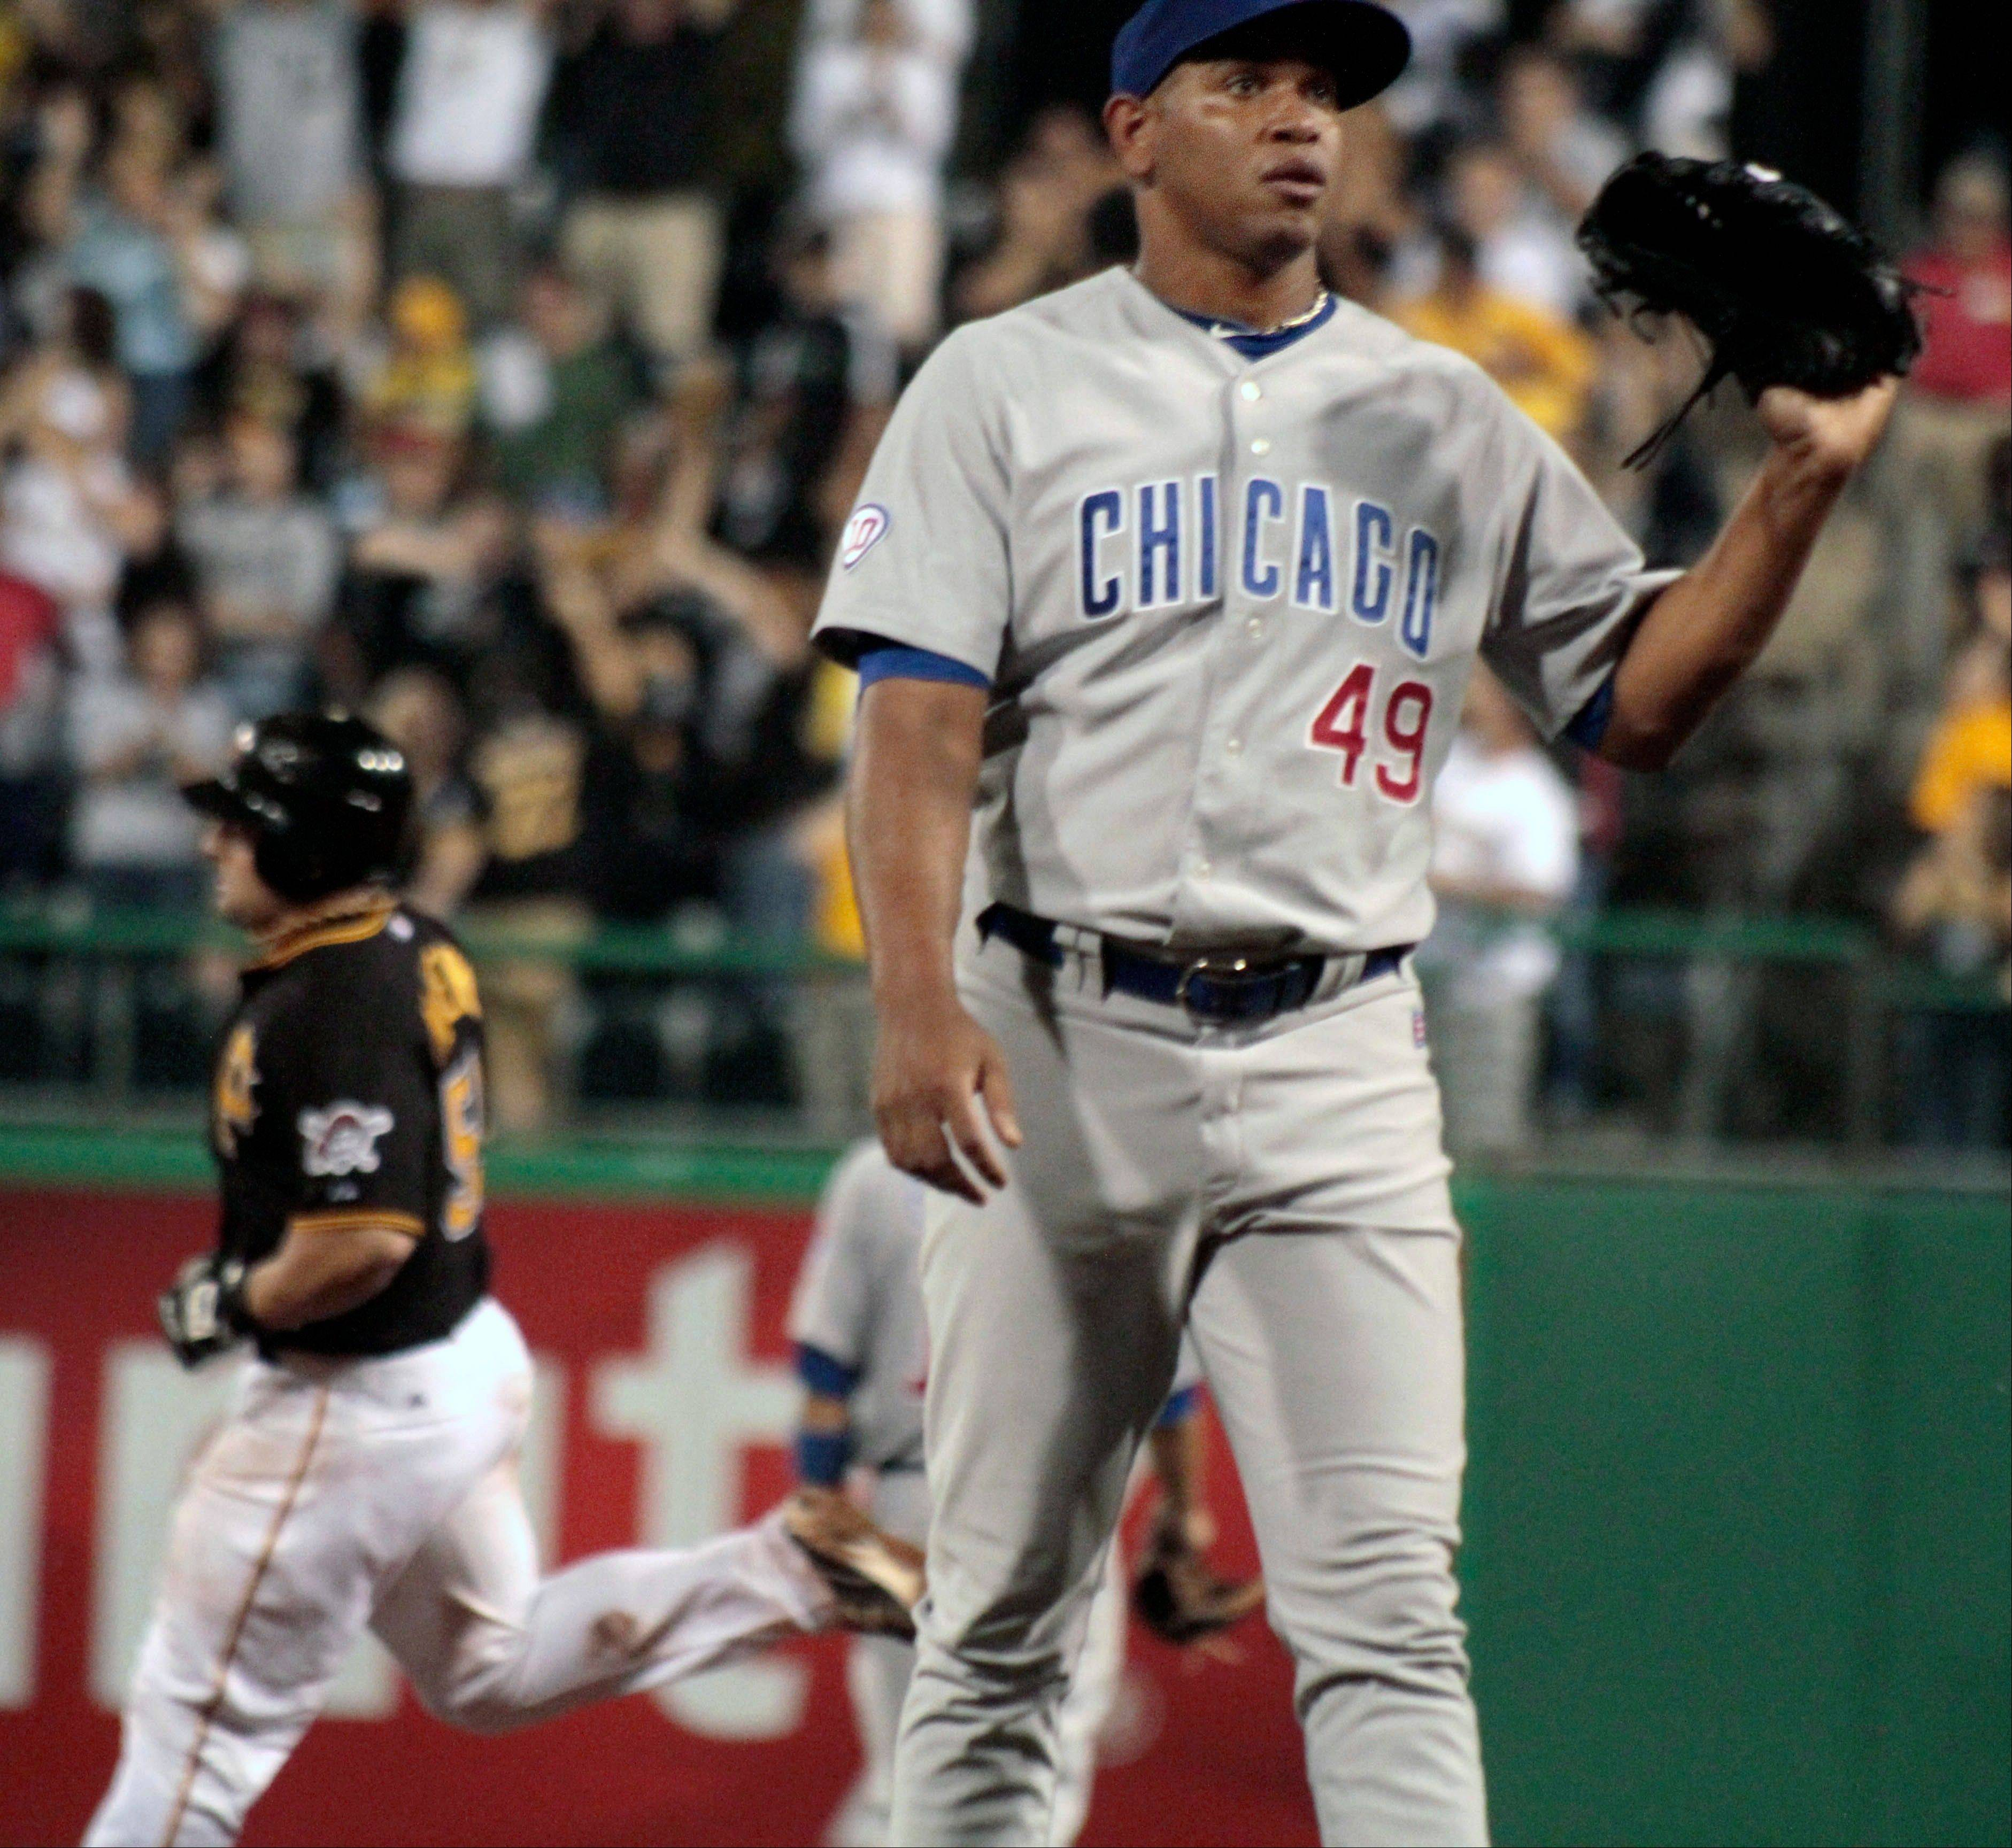 Carlos Marmol awaits a new ball as Pittsburgh's Michael McKenry rounds the bases behind him after hitting a 3-run homer off him in the eighth inning of the Cubs' loss to Pittsburgh.